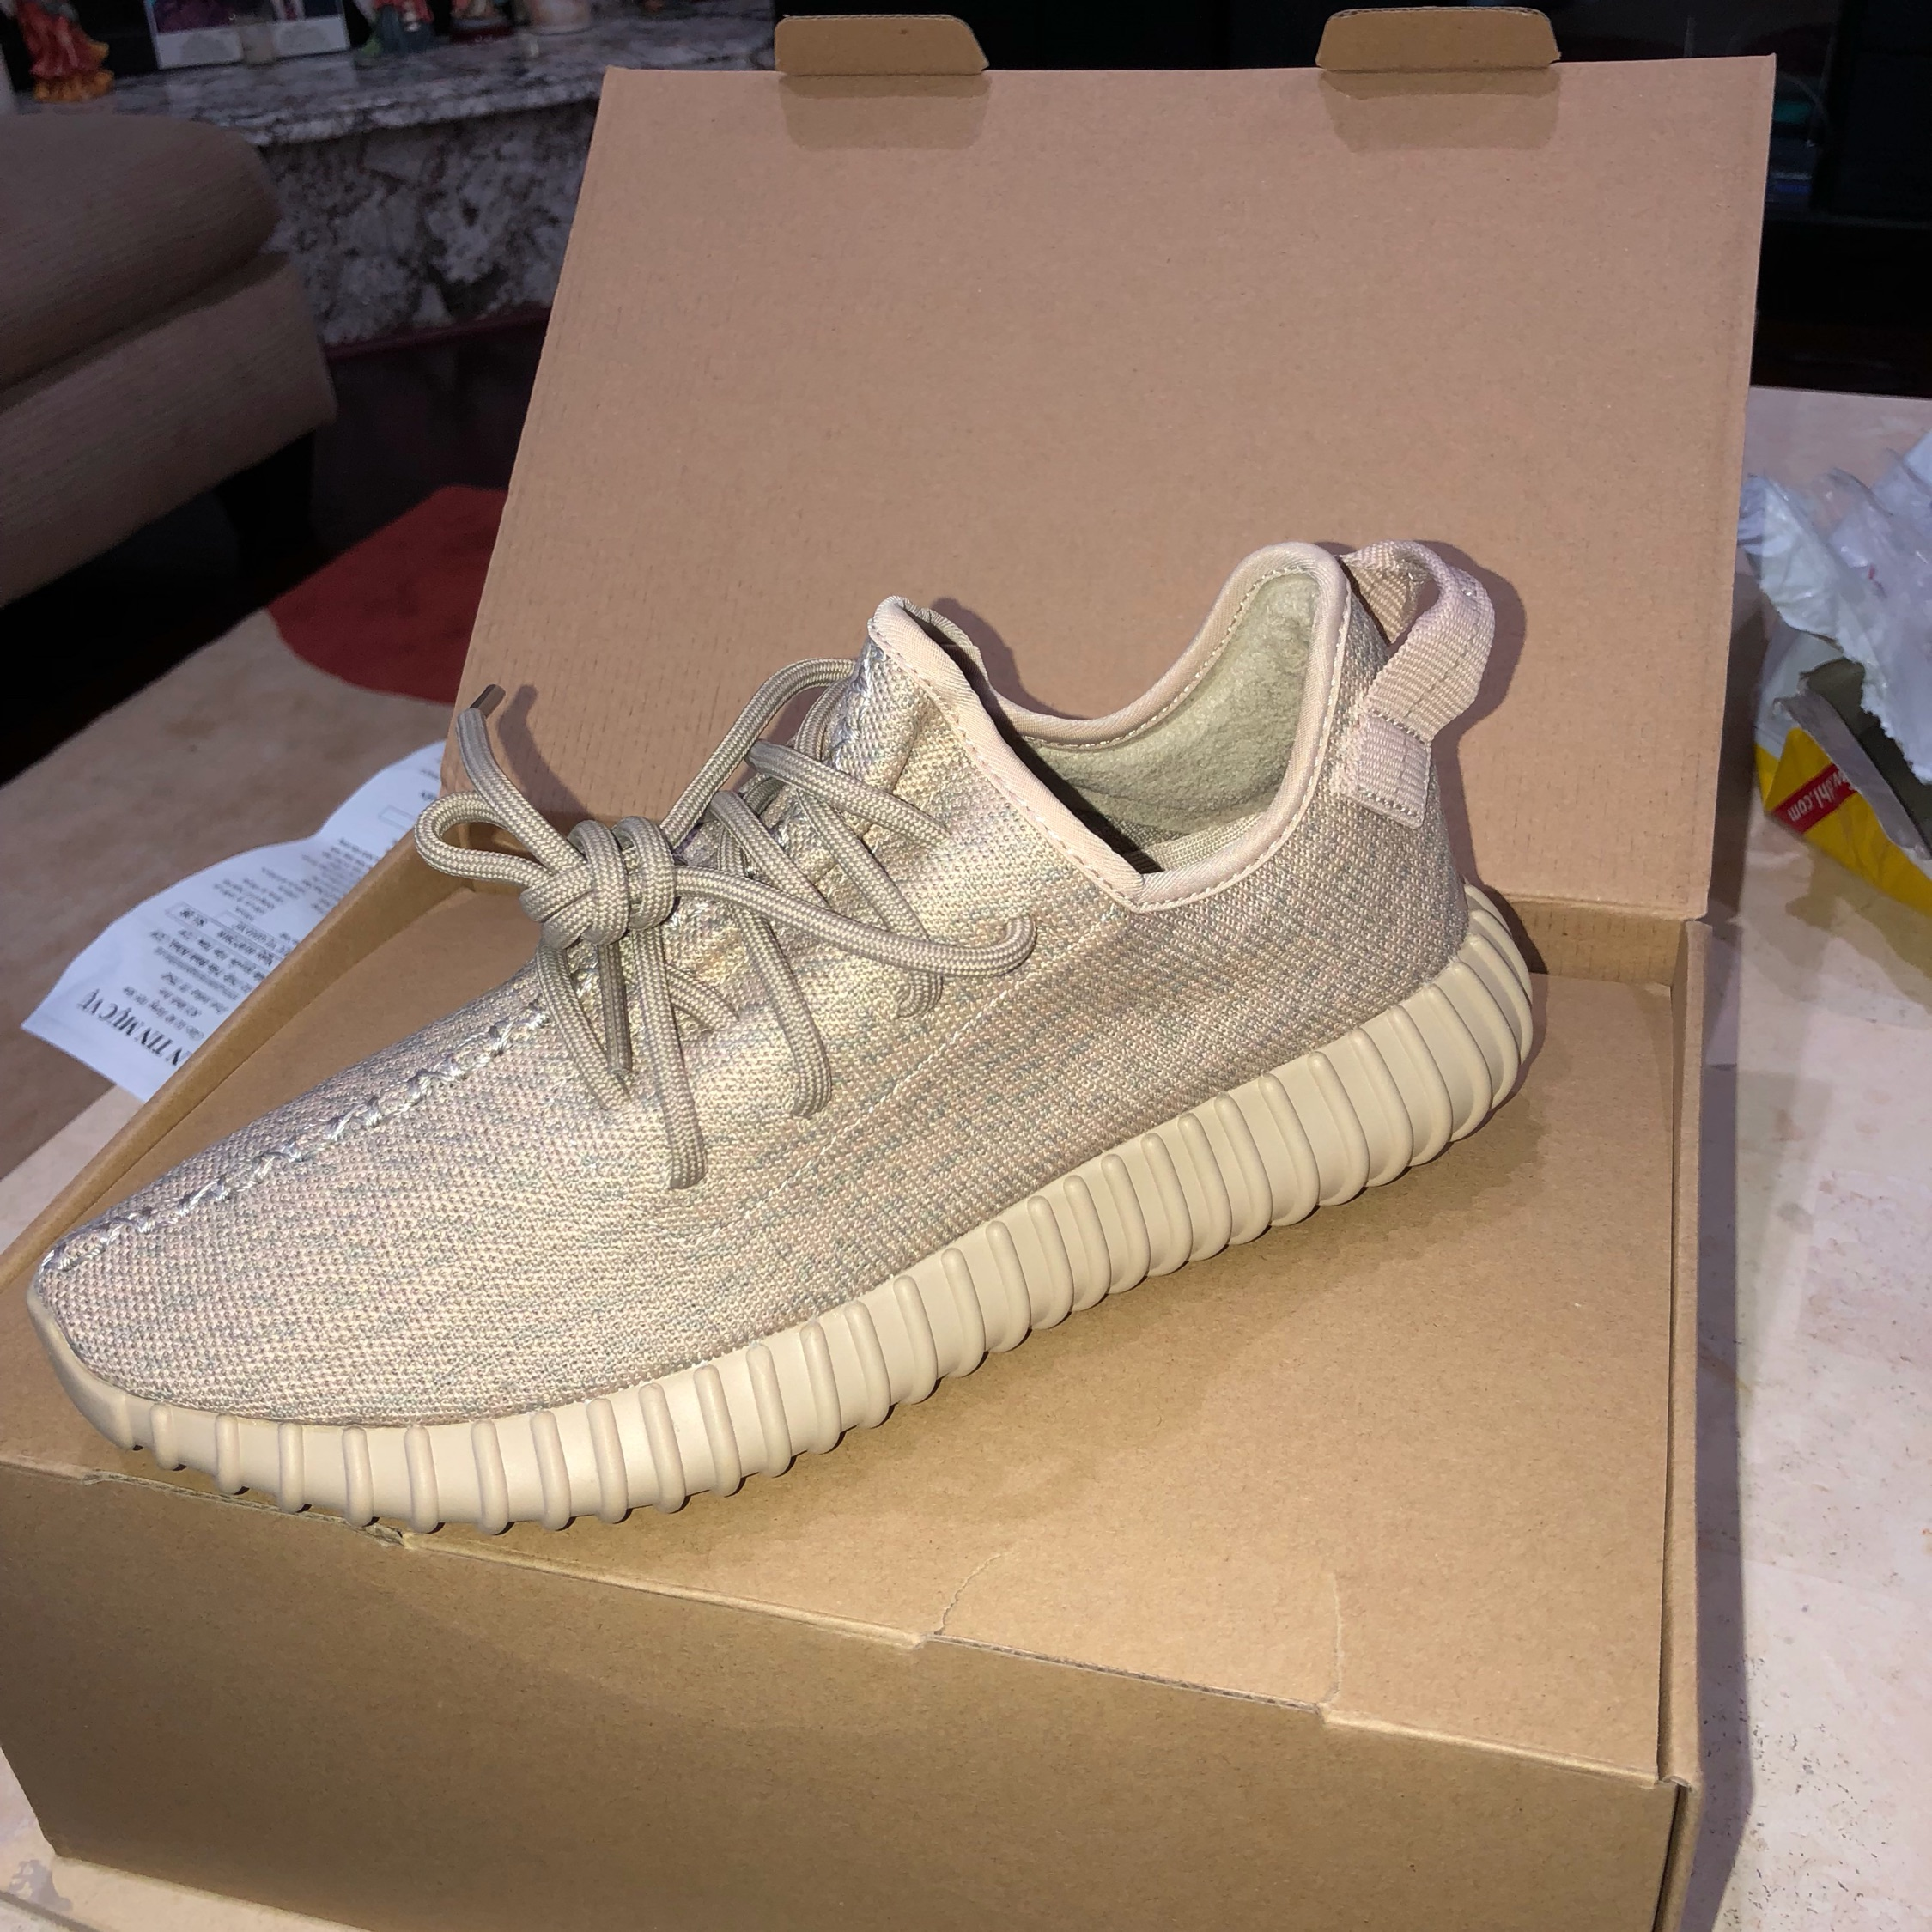 Yeezy 350 Oxford Tans